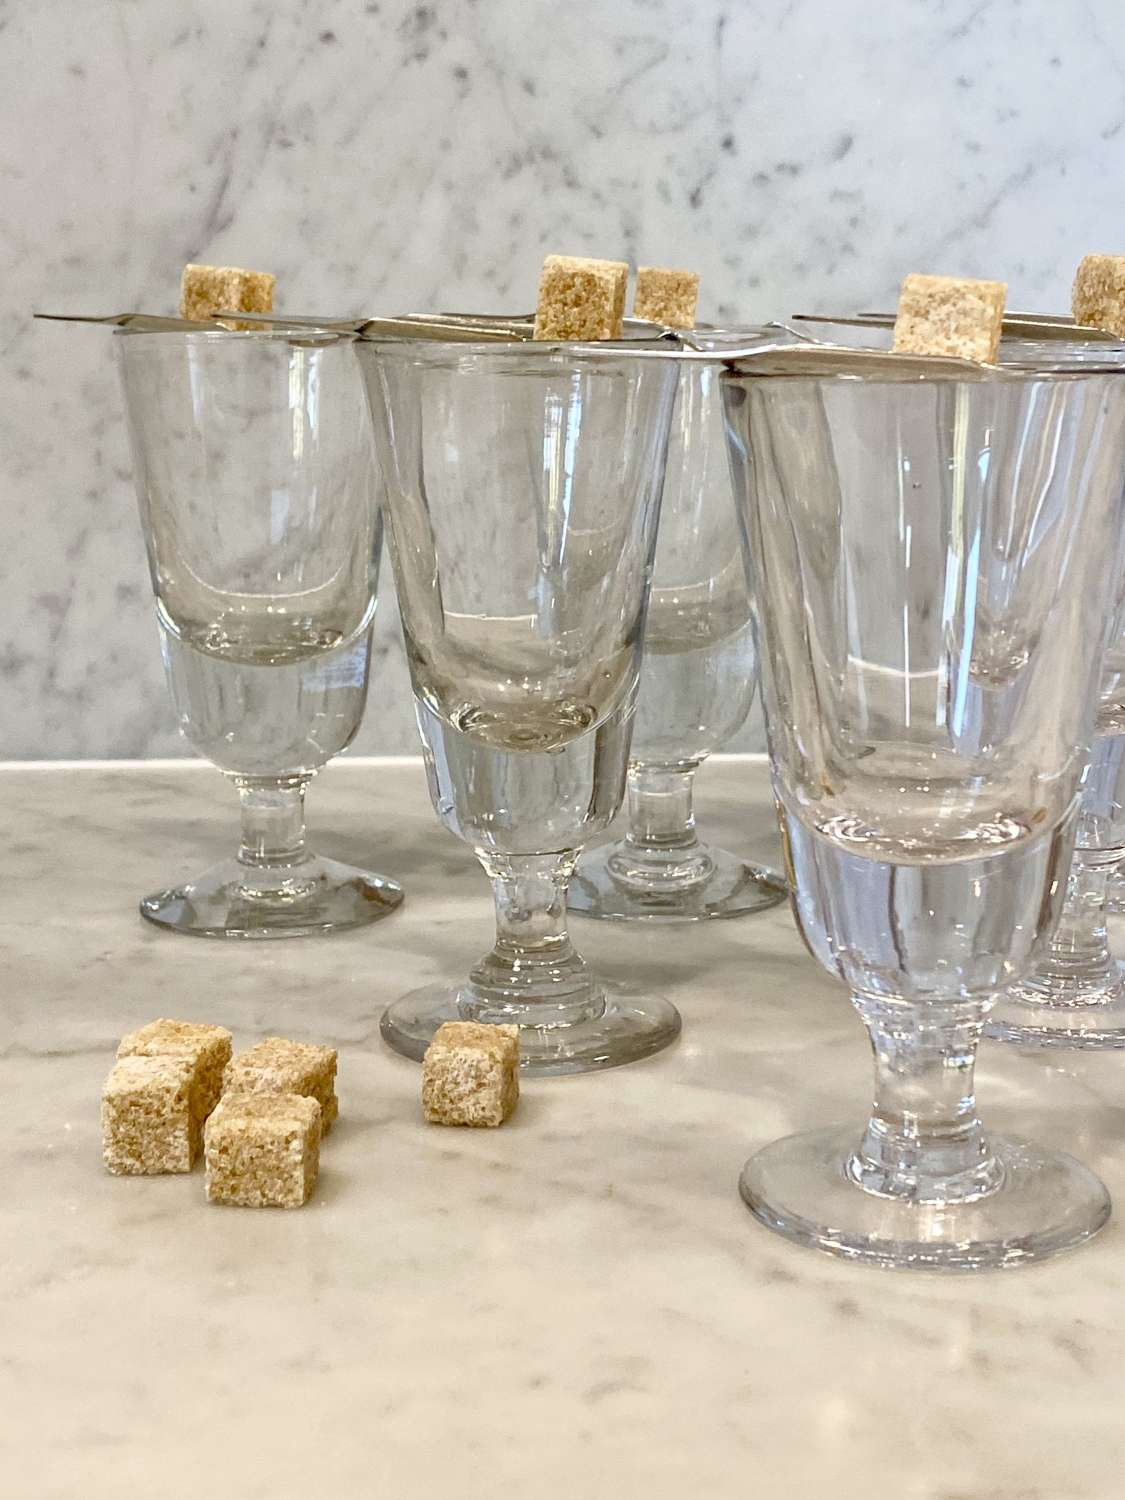 Set of French Bistro glasses and silver plated Absinthe spoons